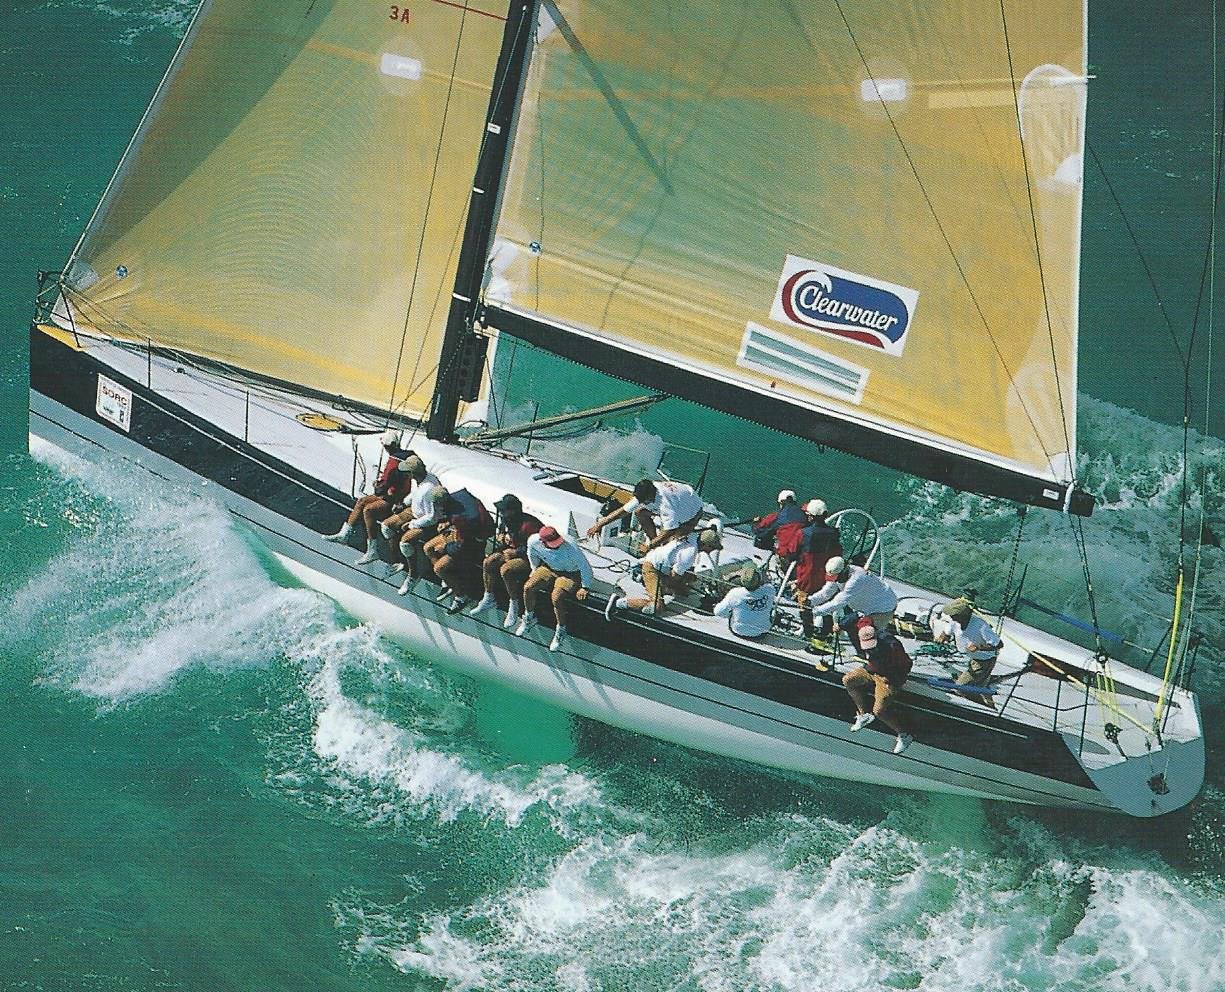 C:\Users\Jim Taylor\Desktop\JTYD\JT_Promo\WebSite\2013\Designs\Racing\95_T49 Numbers\Numbes Upwind.jpeg